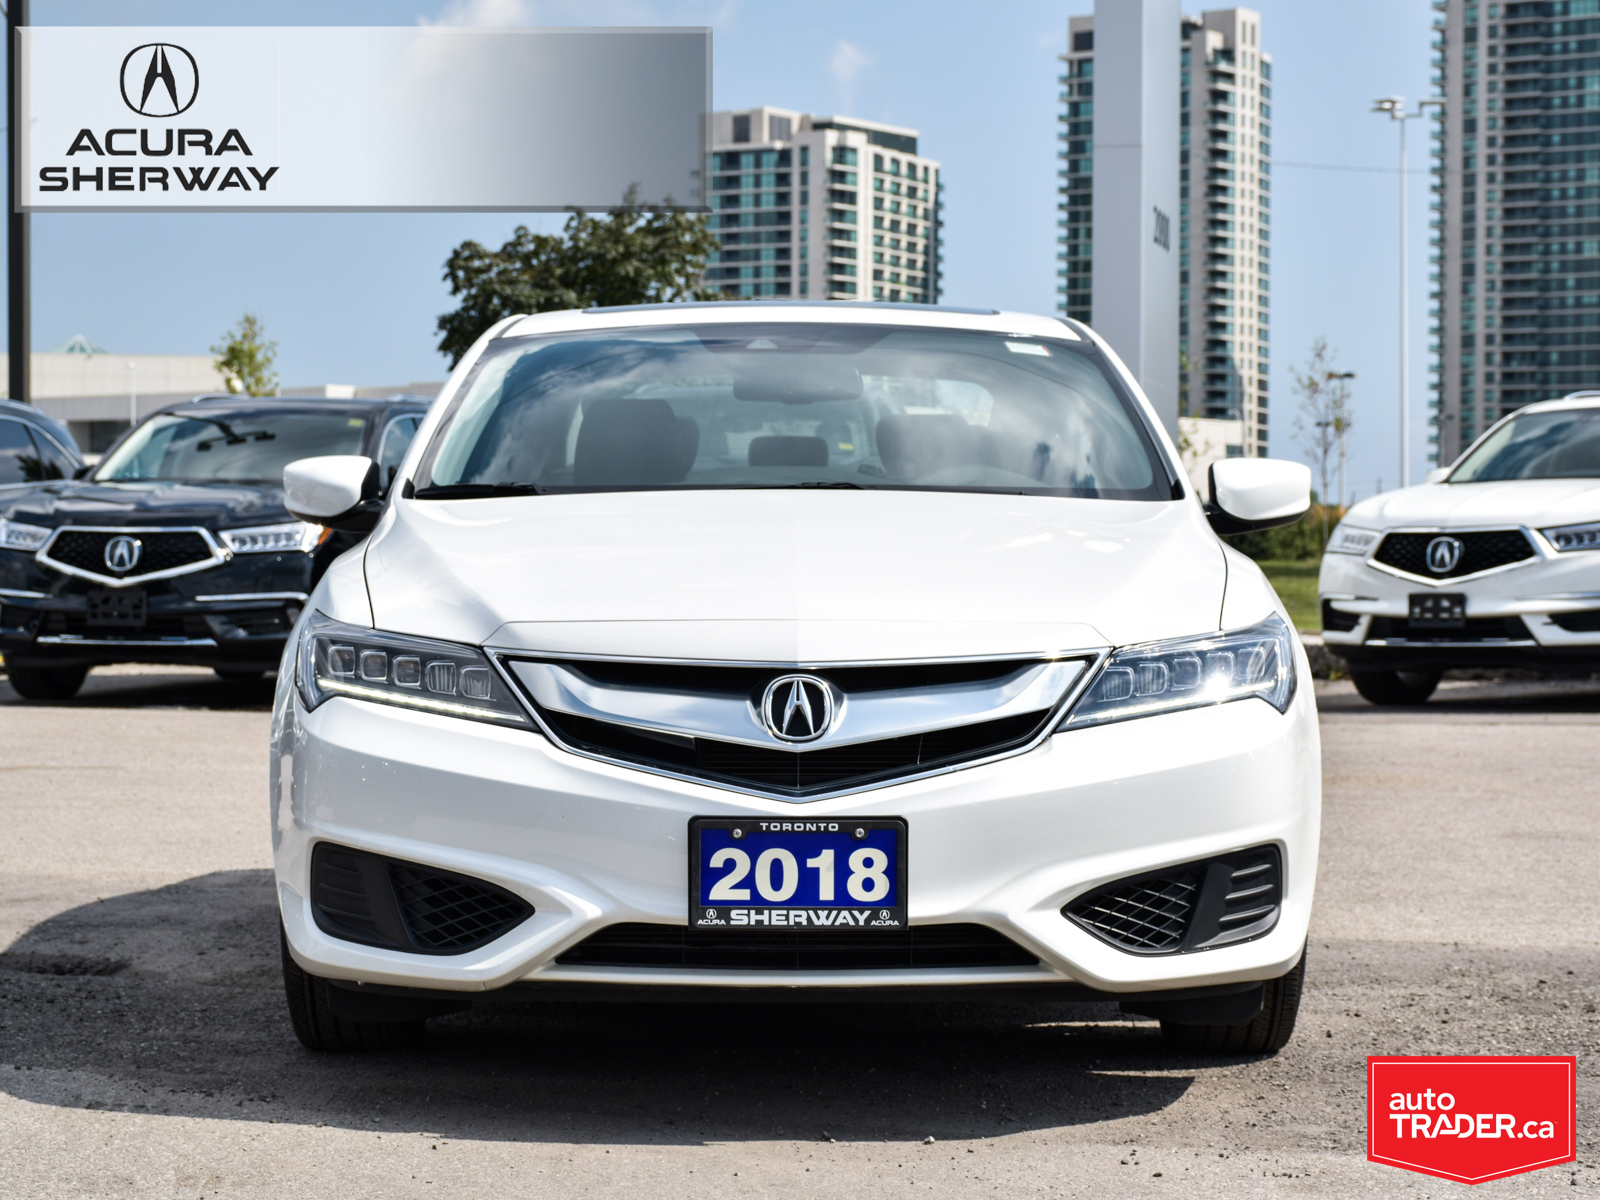 Certified Pre-Owned 2018 Acura ILX Premium 8DCT